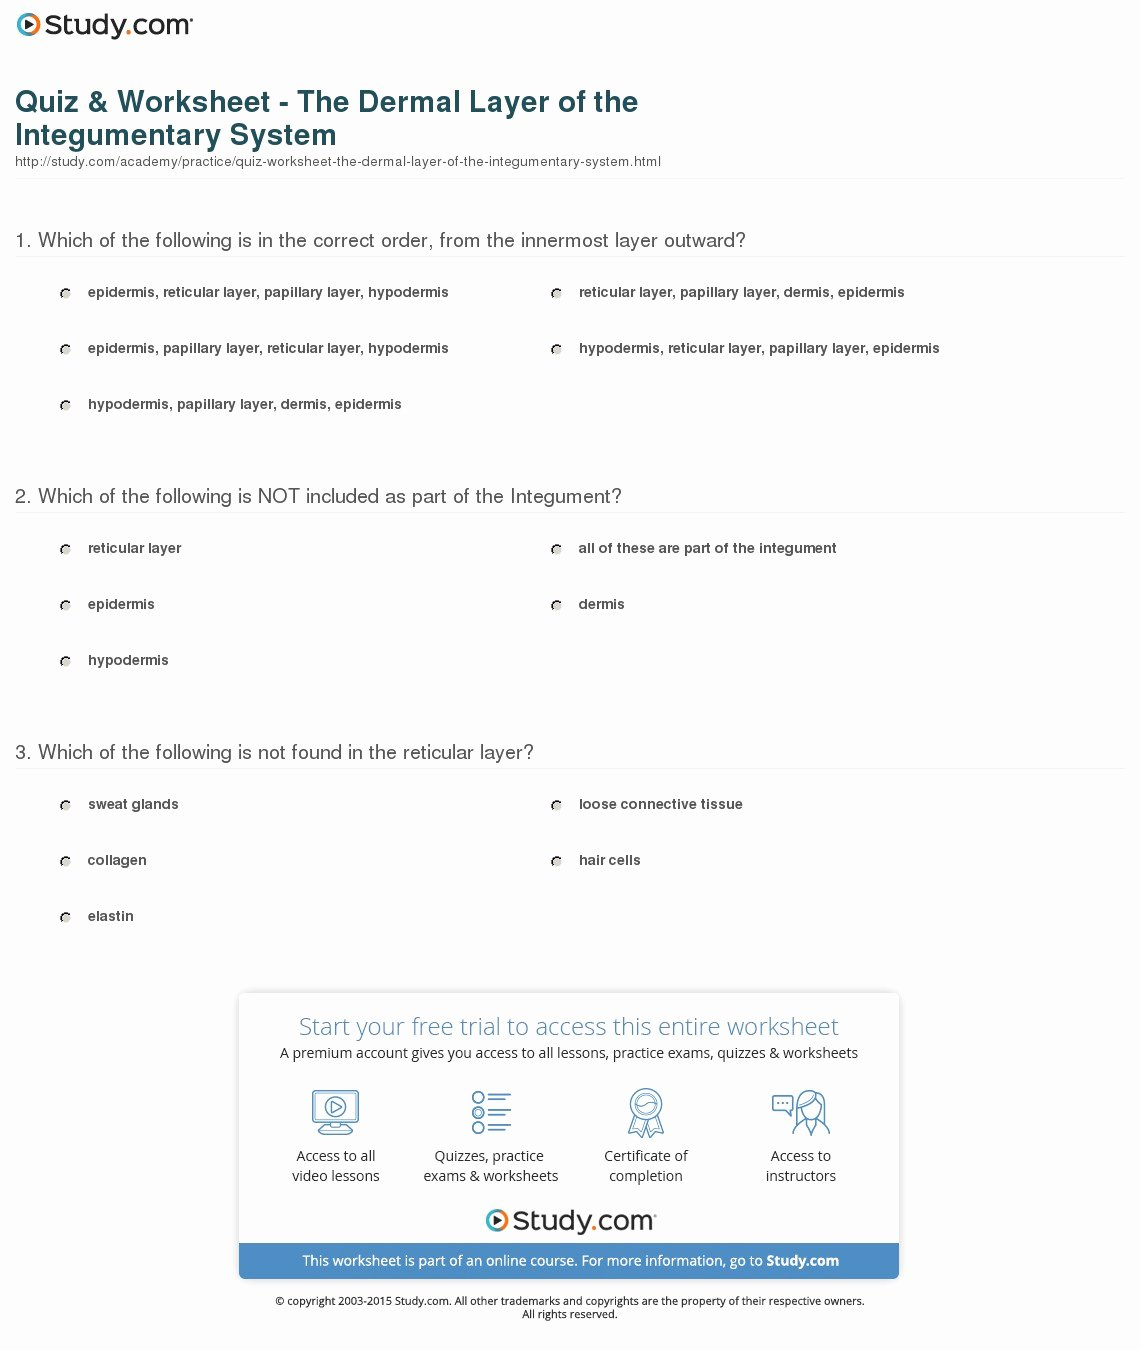 Integumentary System Worksheet Answers Inspirational Quiz & Worksheet the Dermal Layer Of the Integumentary